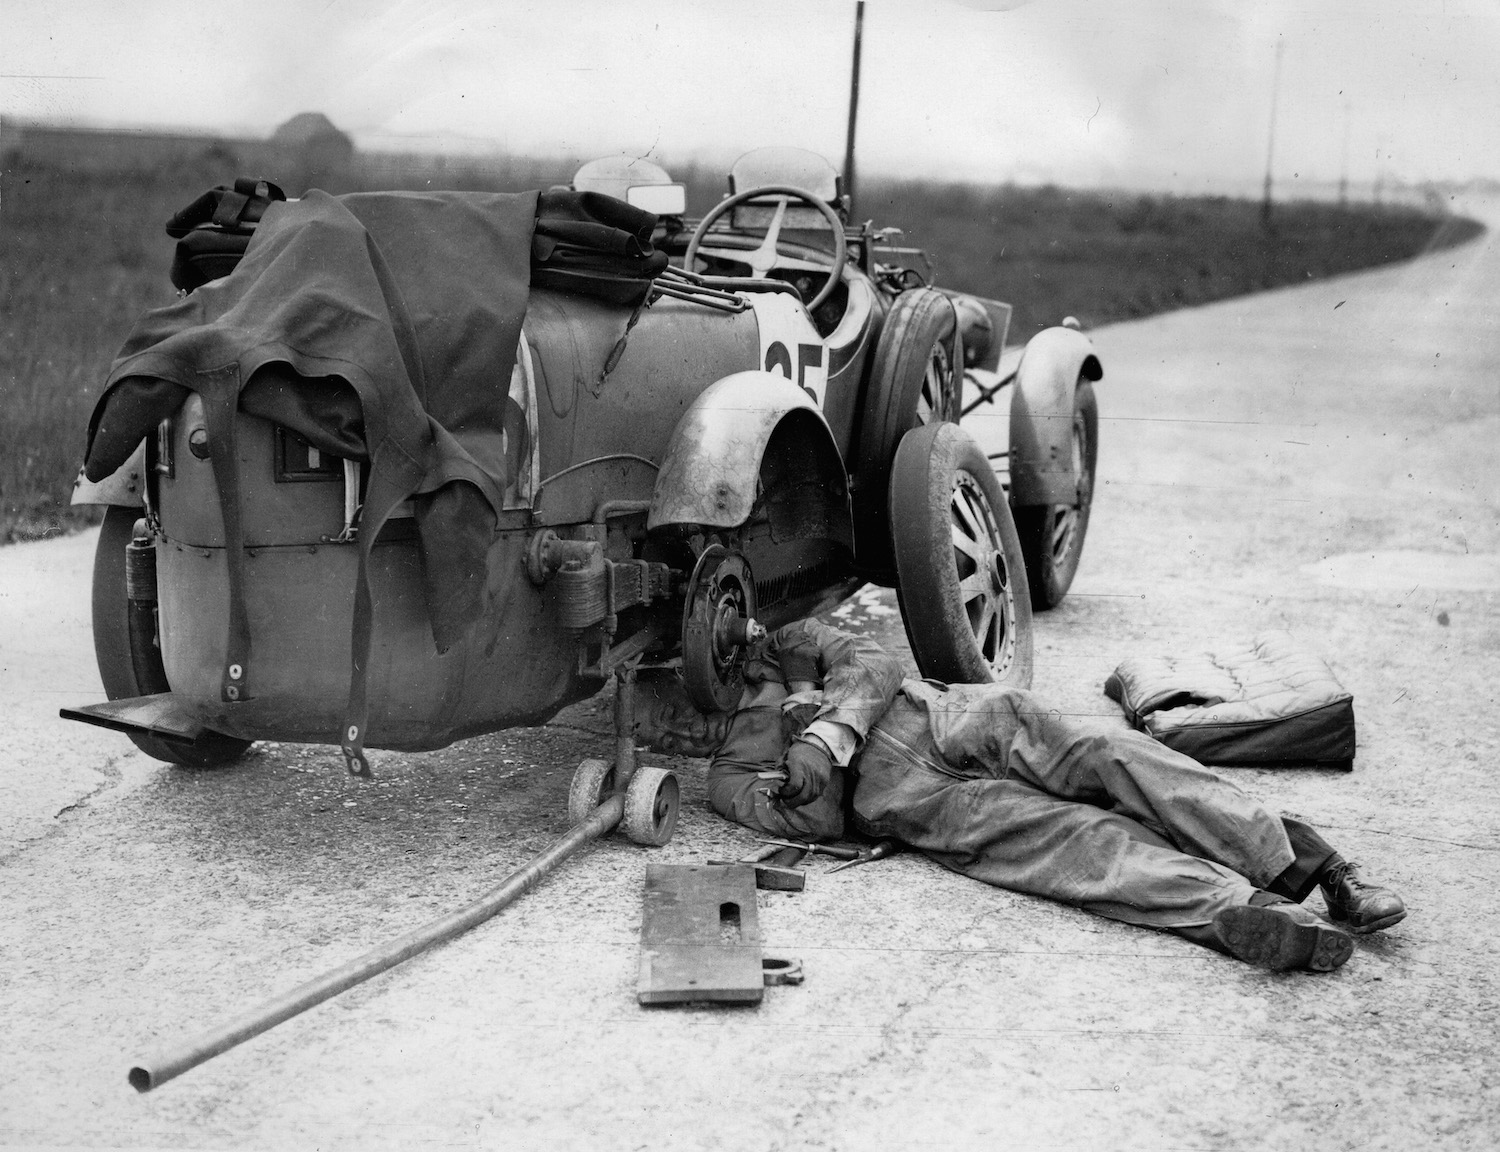 Lord Howe changing the rear wheel of his Bugatti car in 1930 while driving with Captain Malcolm Campbell during the Double Twelve Hour Race on the motor racing circuit Brooklands. United Kingdom. Slow leaks have always been an annoying problem, but you can use soap to find a slow tire leak or valve stem leak.   Imagno/Getty Images